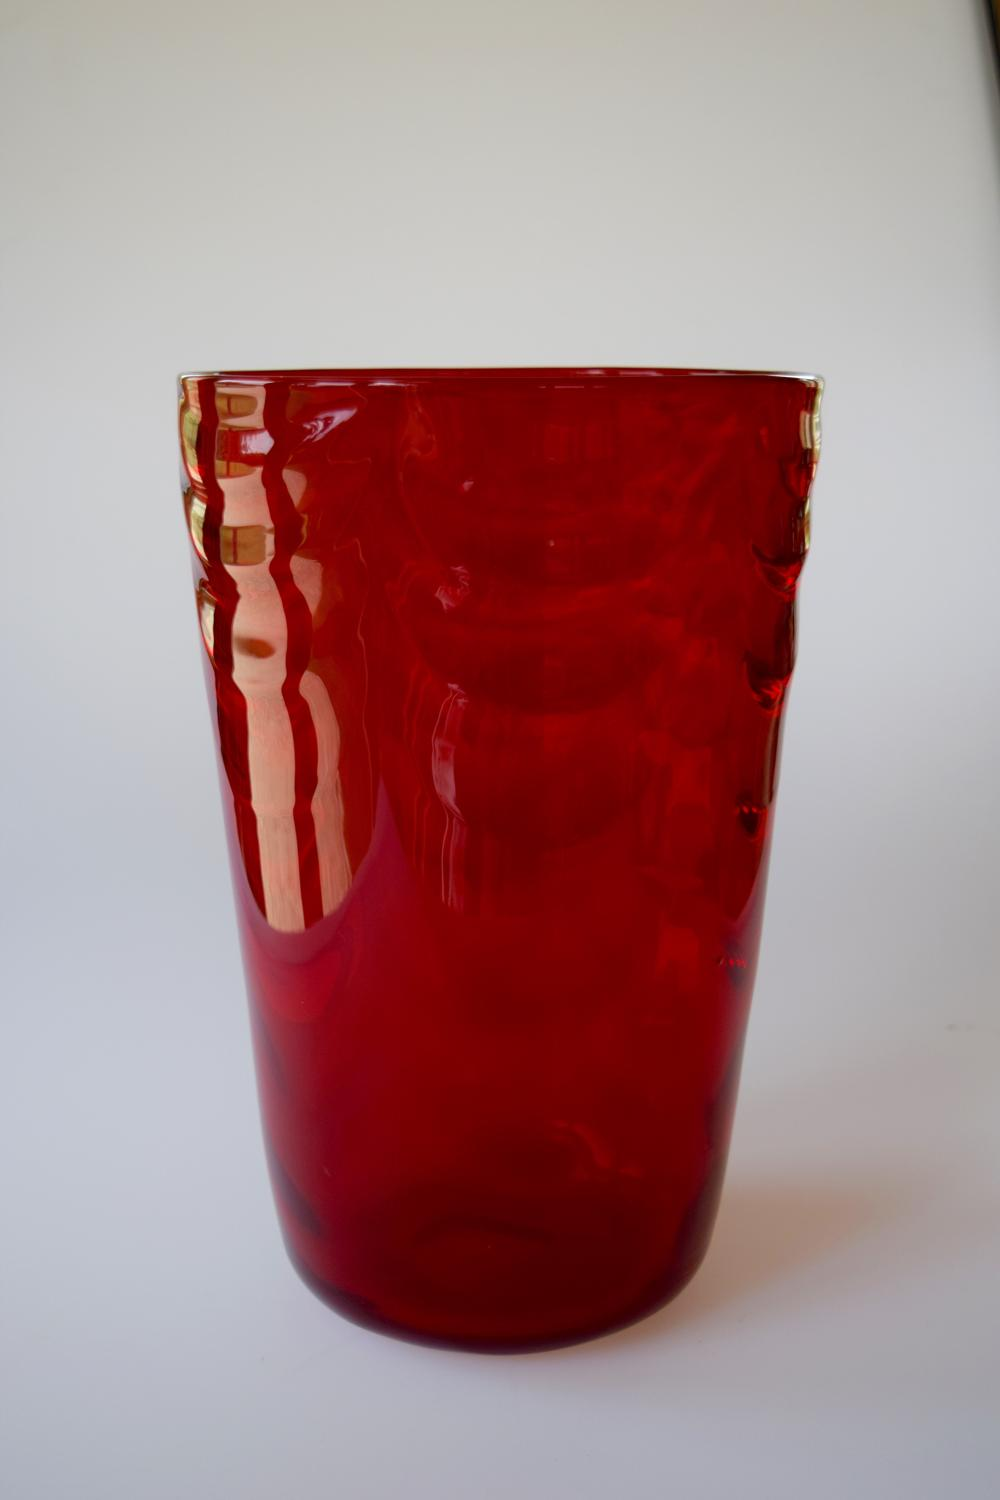 Ruby wave ribbed bucket vase, Whitefriars.